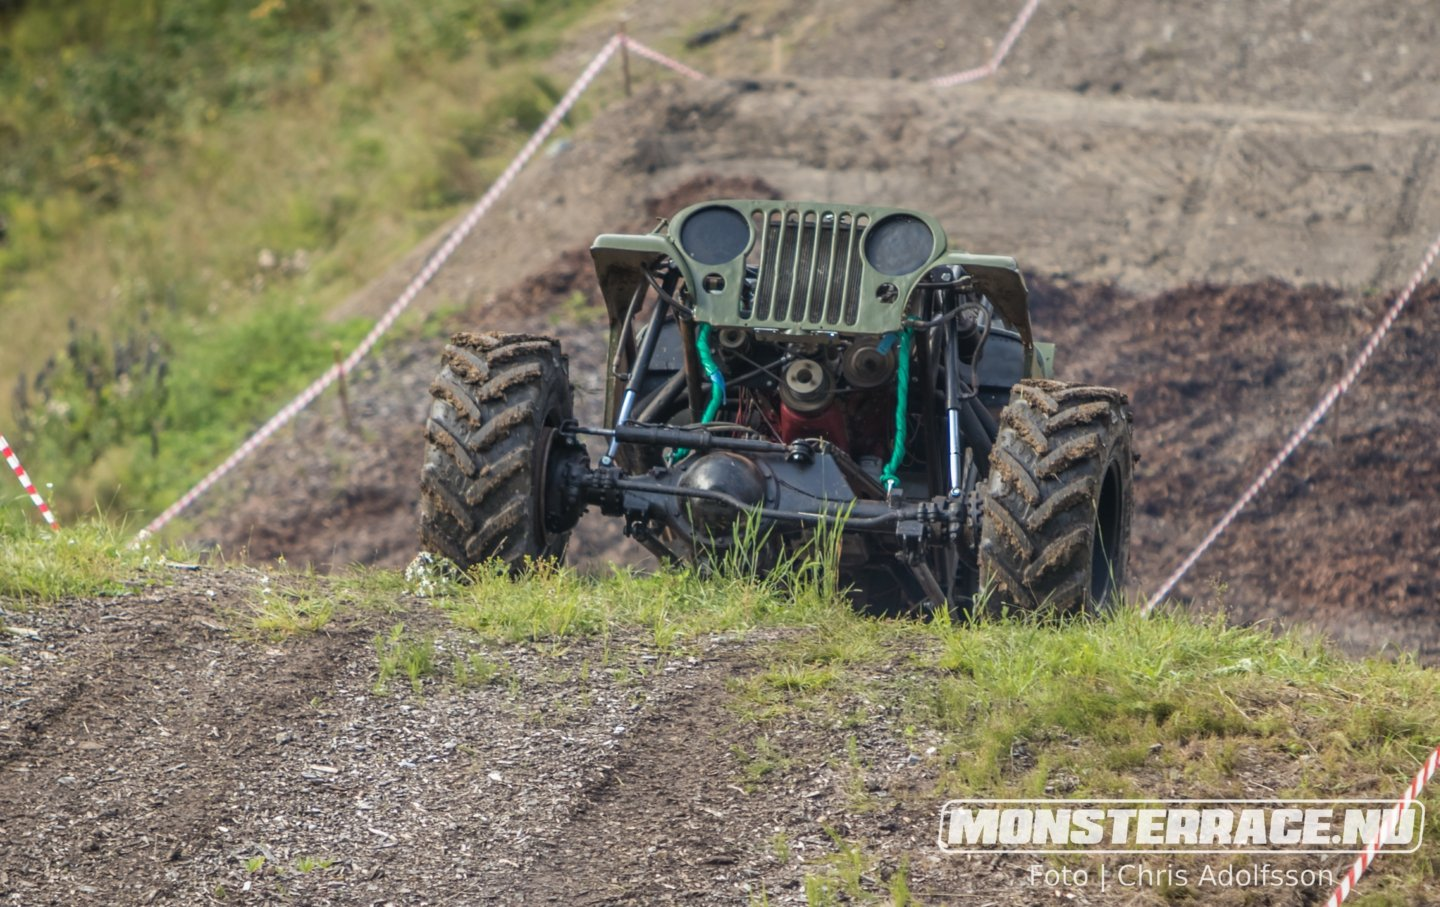 Monsterrace Ed dag 1 (79)